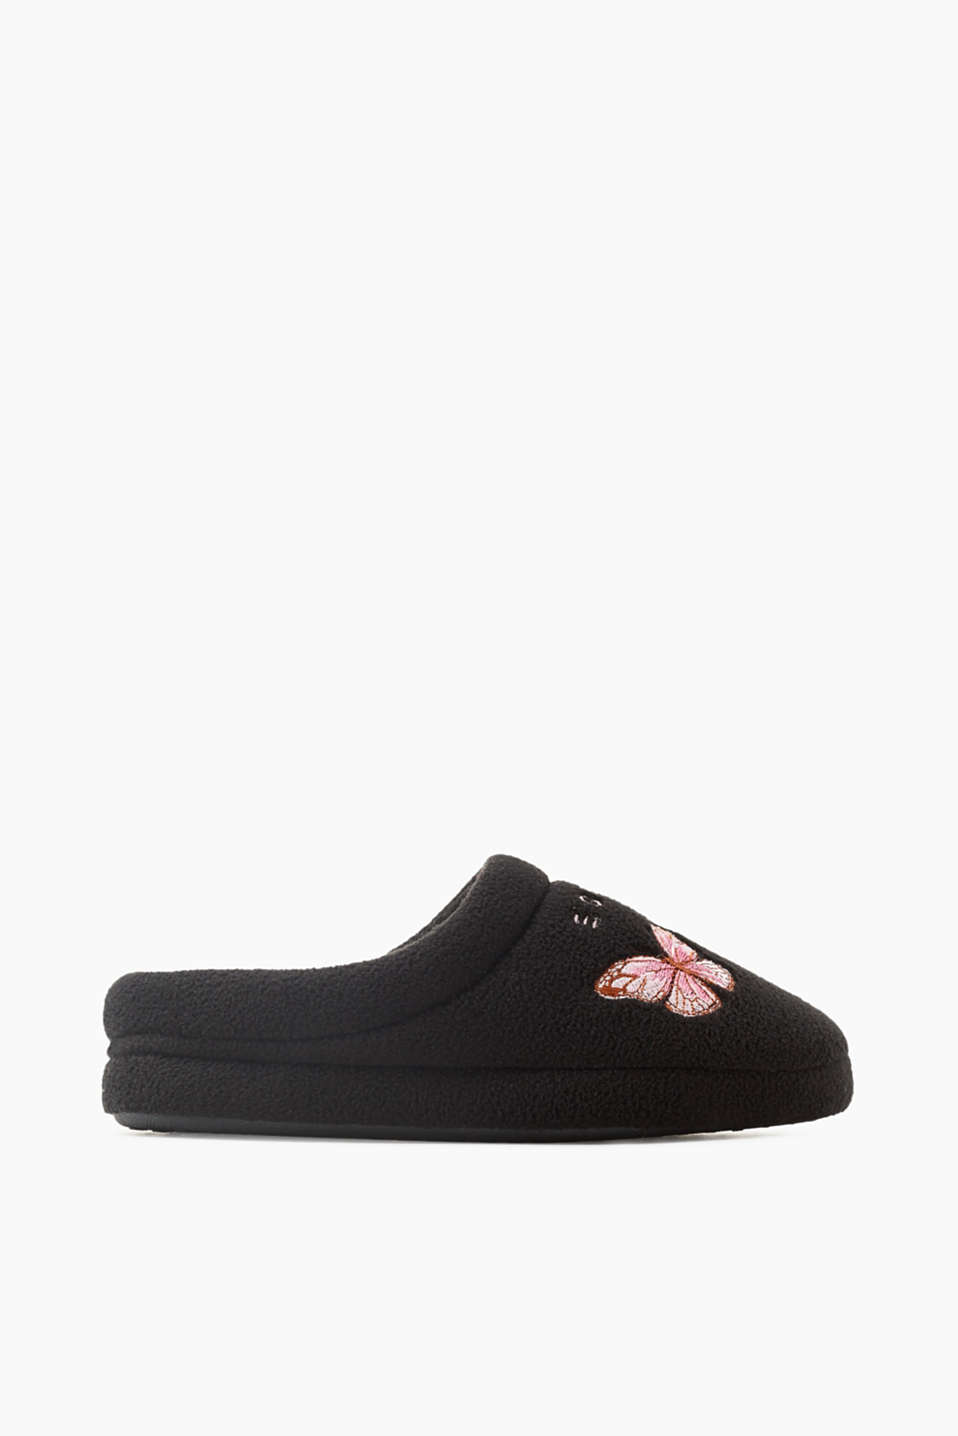 The pretty butterfly appliqué on the vamp accentuates the lightness of these cosy fleece slip-ons